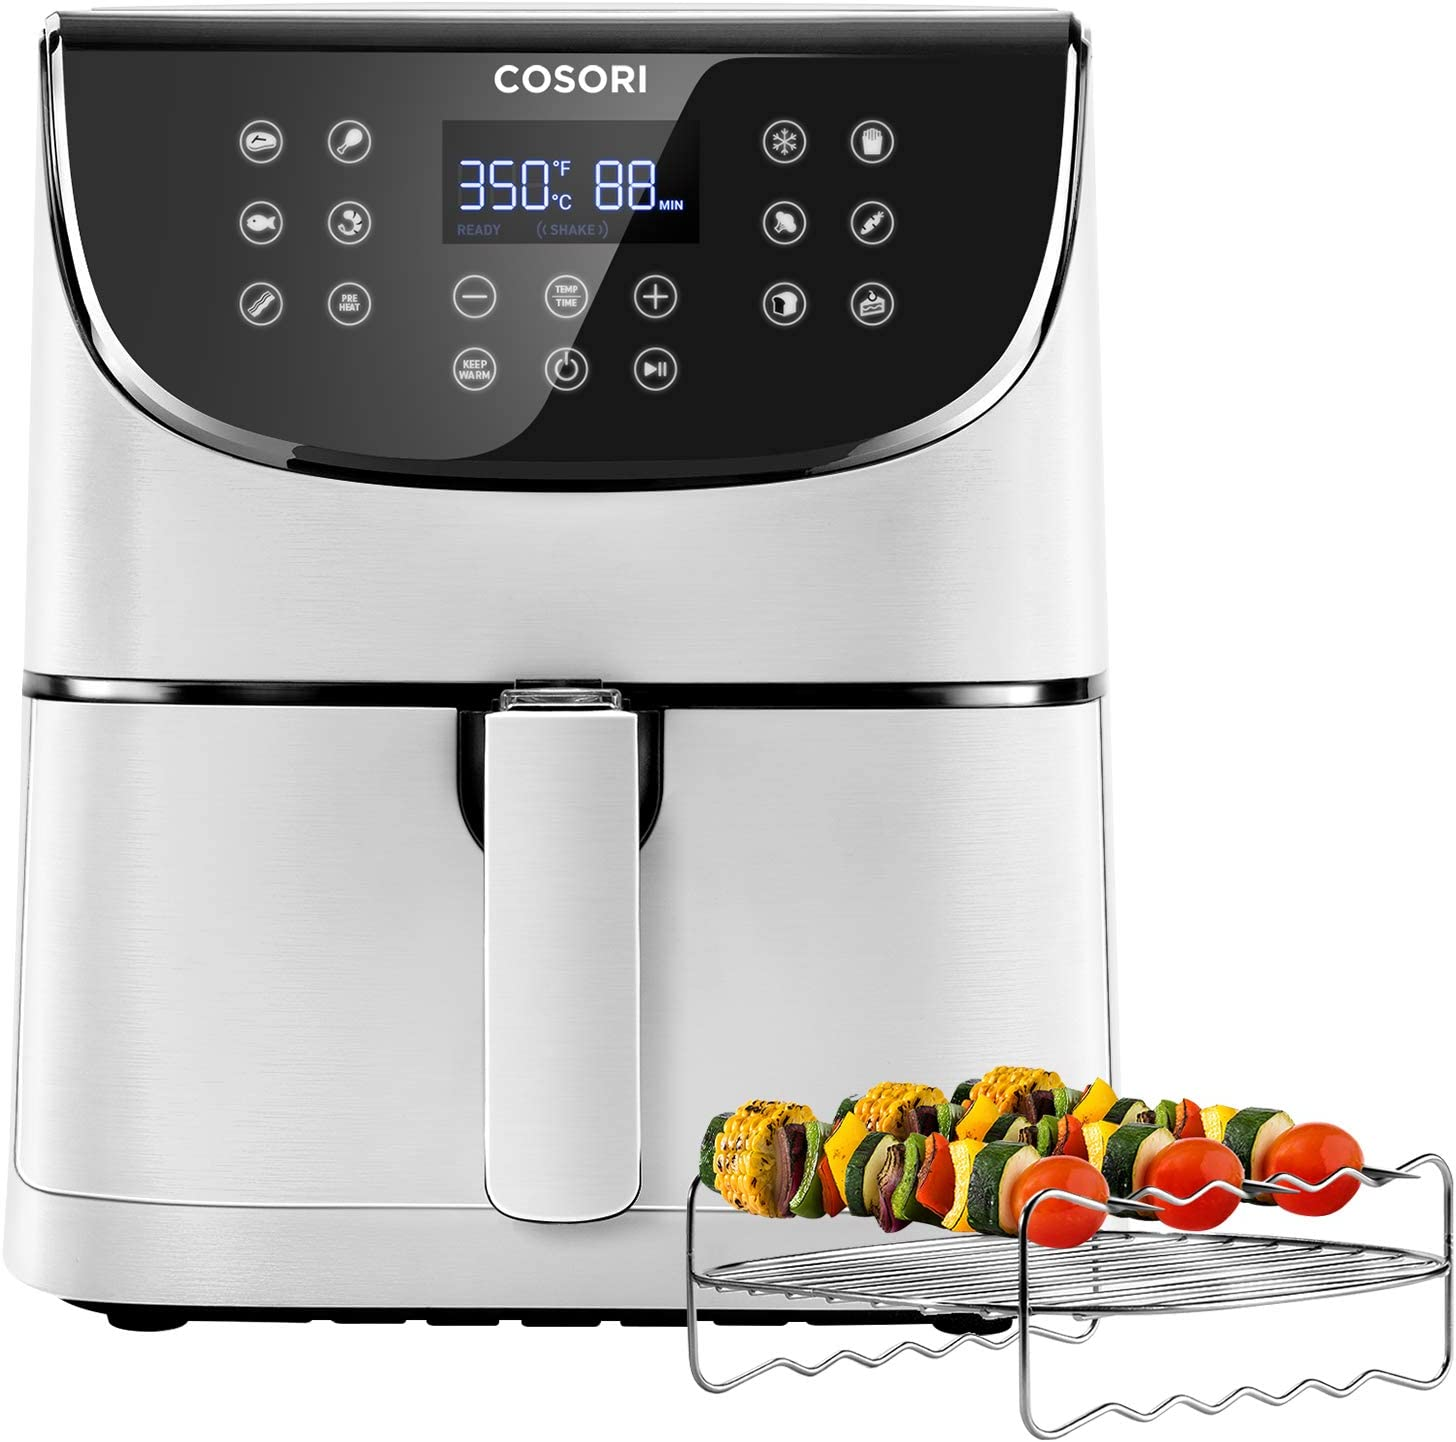 COSORI Air Fryer(100 Recipes, Rack&4 Skewers),3.7QT Electric Hot Air Fryers Oven Oilless Cooker,11 Presets,Preheat& Shake Reminder,LED Touch Digital Screen,Nonstick Basket,1500W,White